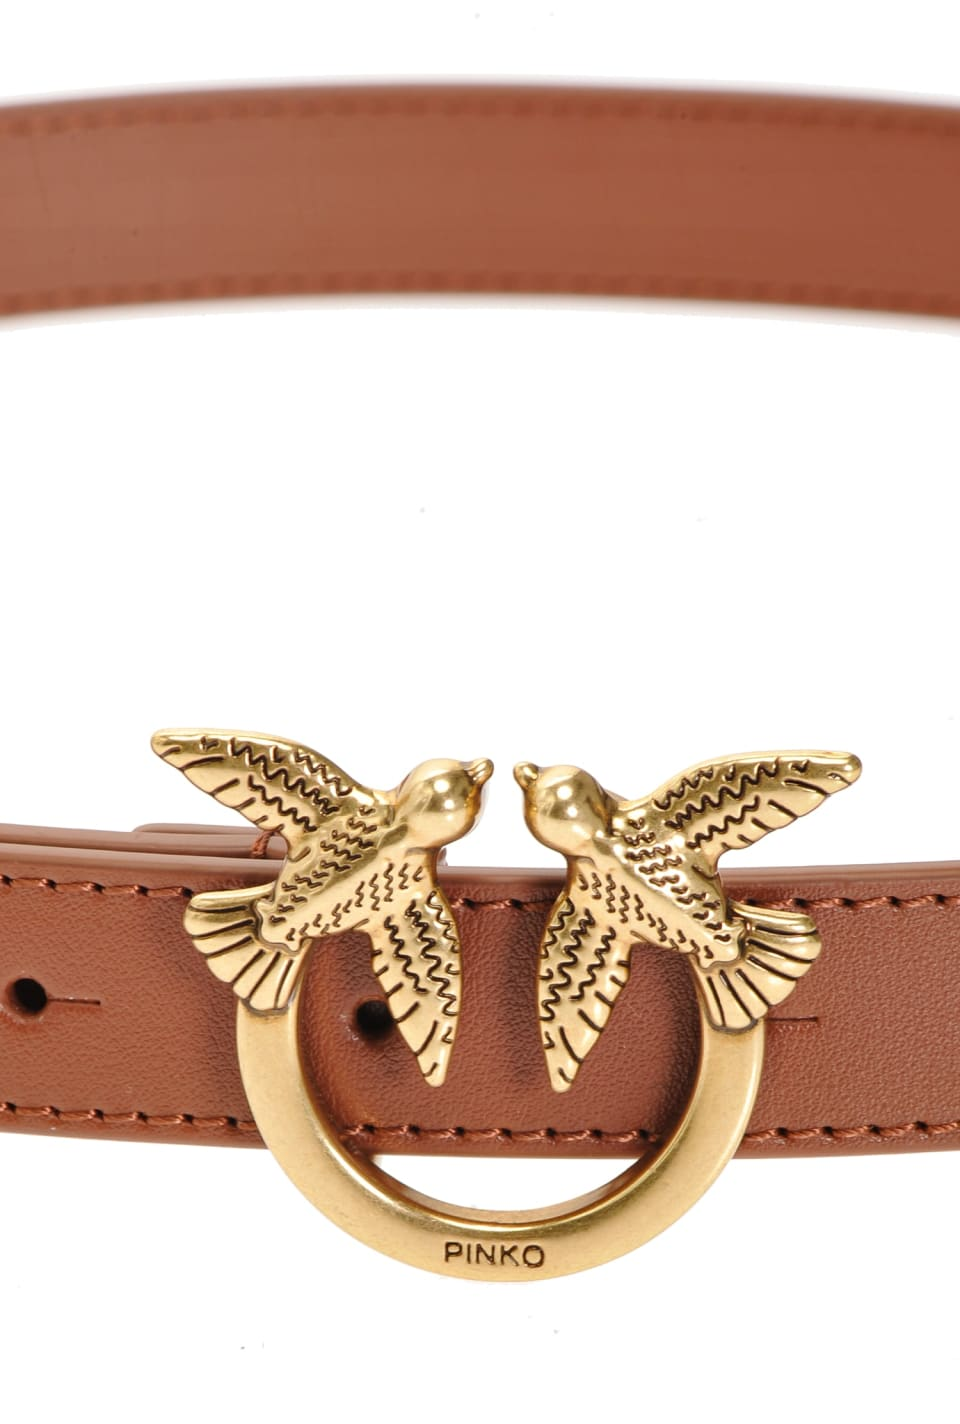 Narrow belt with Love Birds buckle